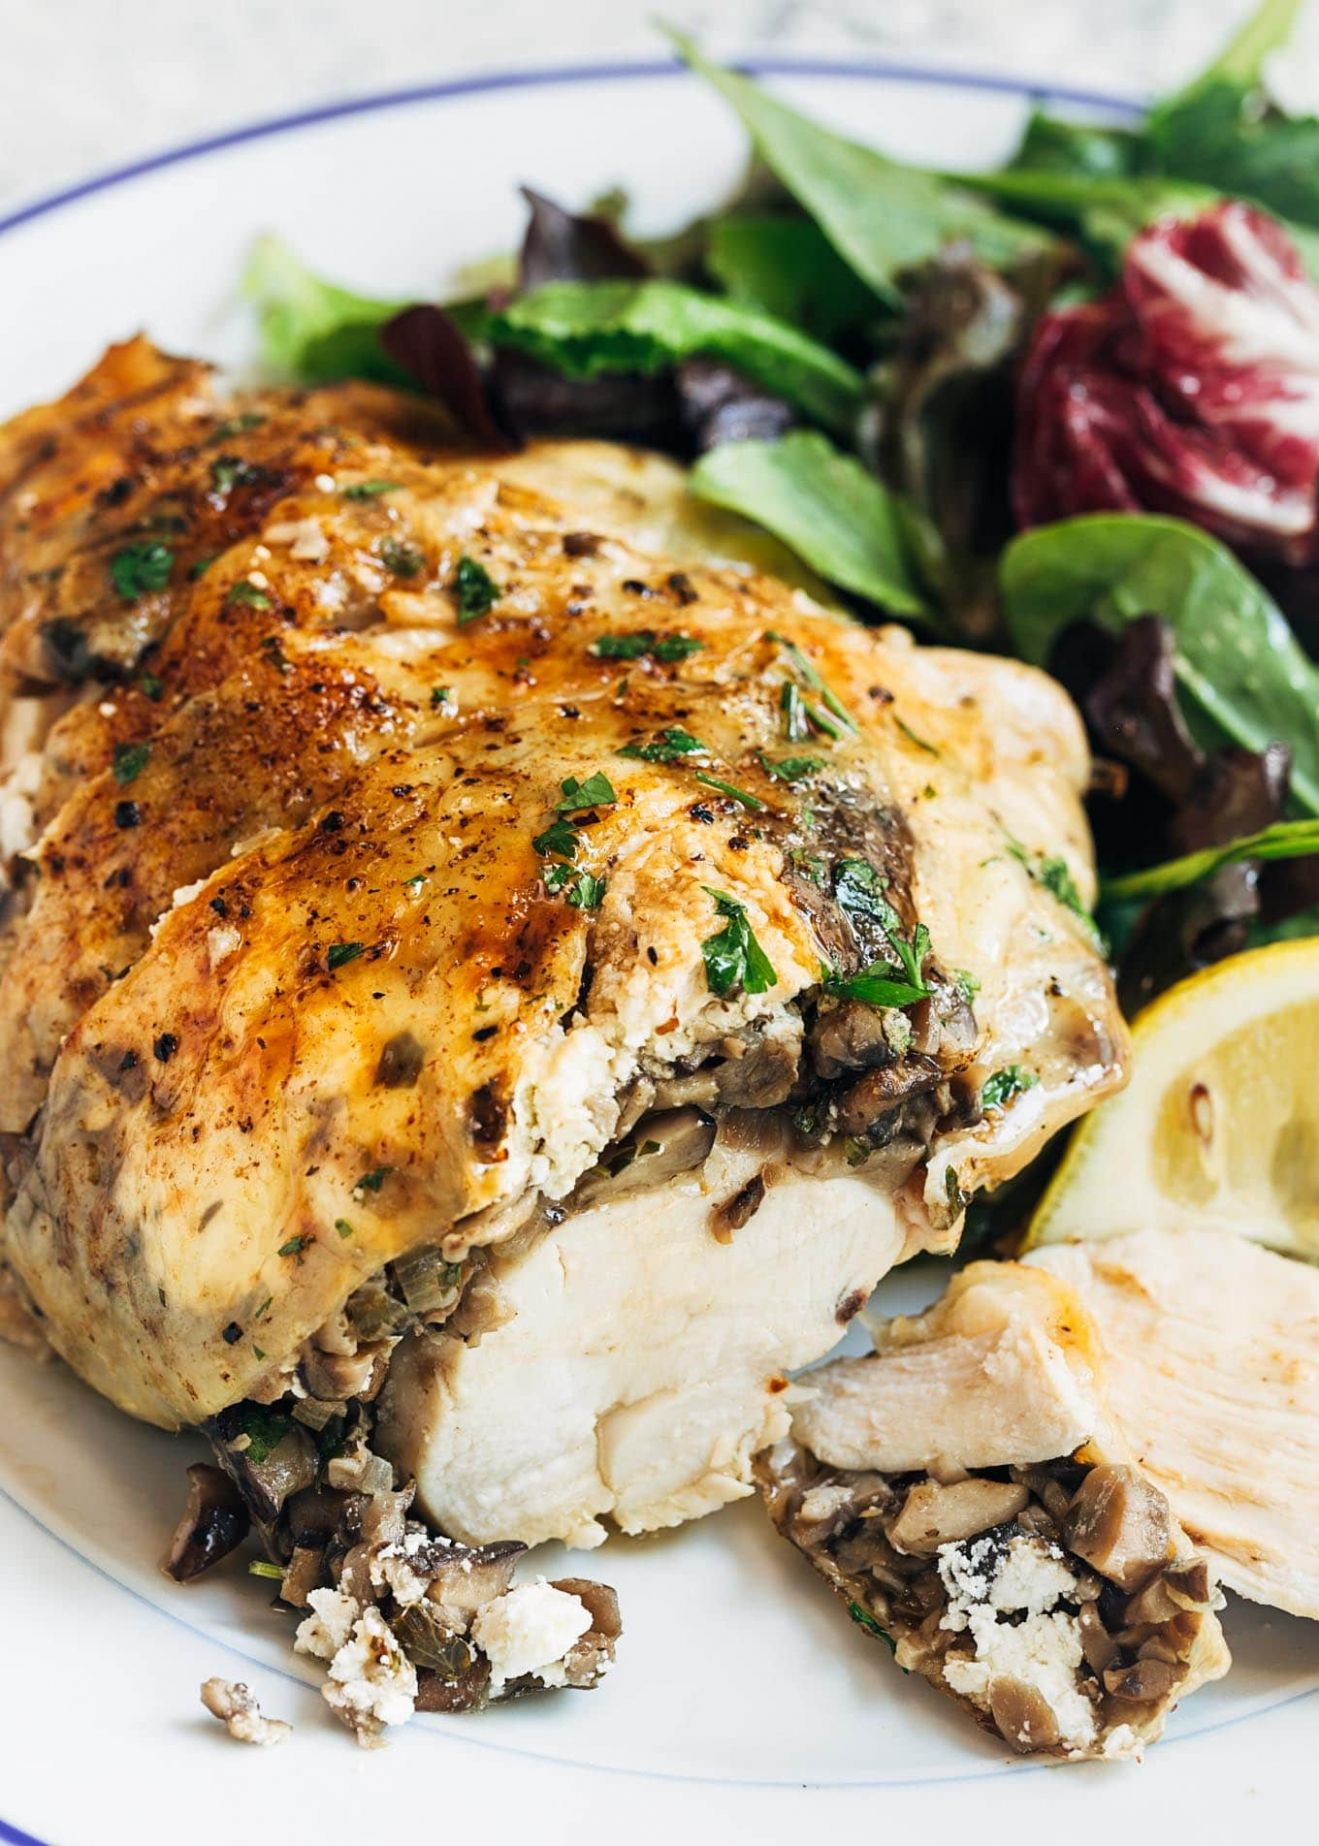 Stuffed Chicken Breasts with Mushrooms & Goat Cheese - Recipes Chicken Breast And Mushrooms